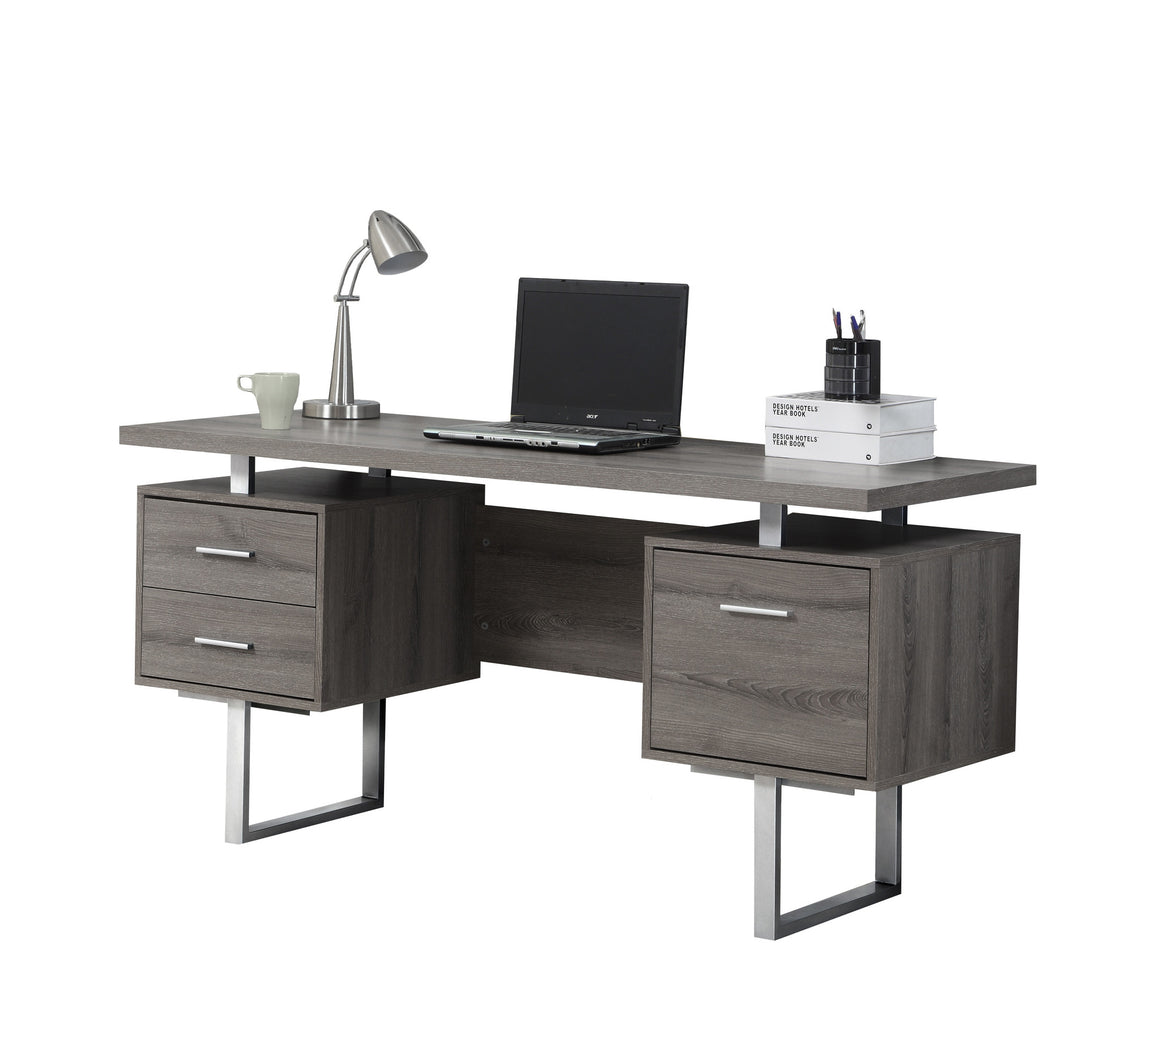 "60""L Dark Taupe Computer Desk / Silver Metal Legs / Left and Right Drawers by Monarch Specialties Inc. - White Background - TheOfficeFurnitureDepot"